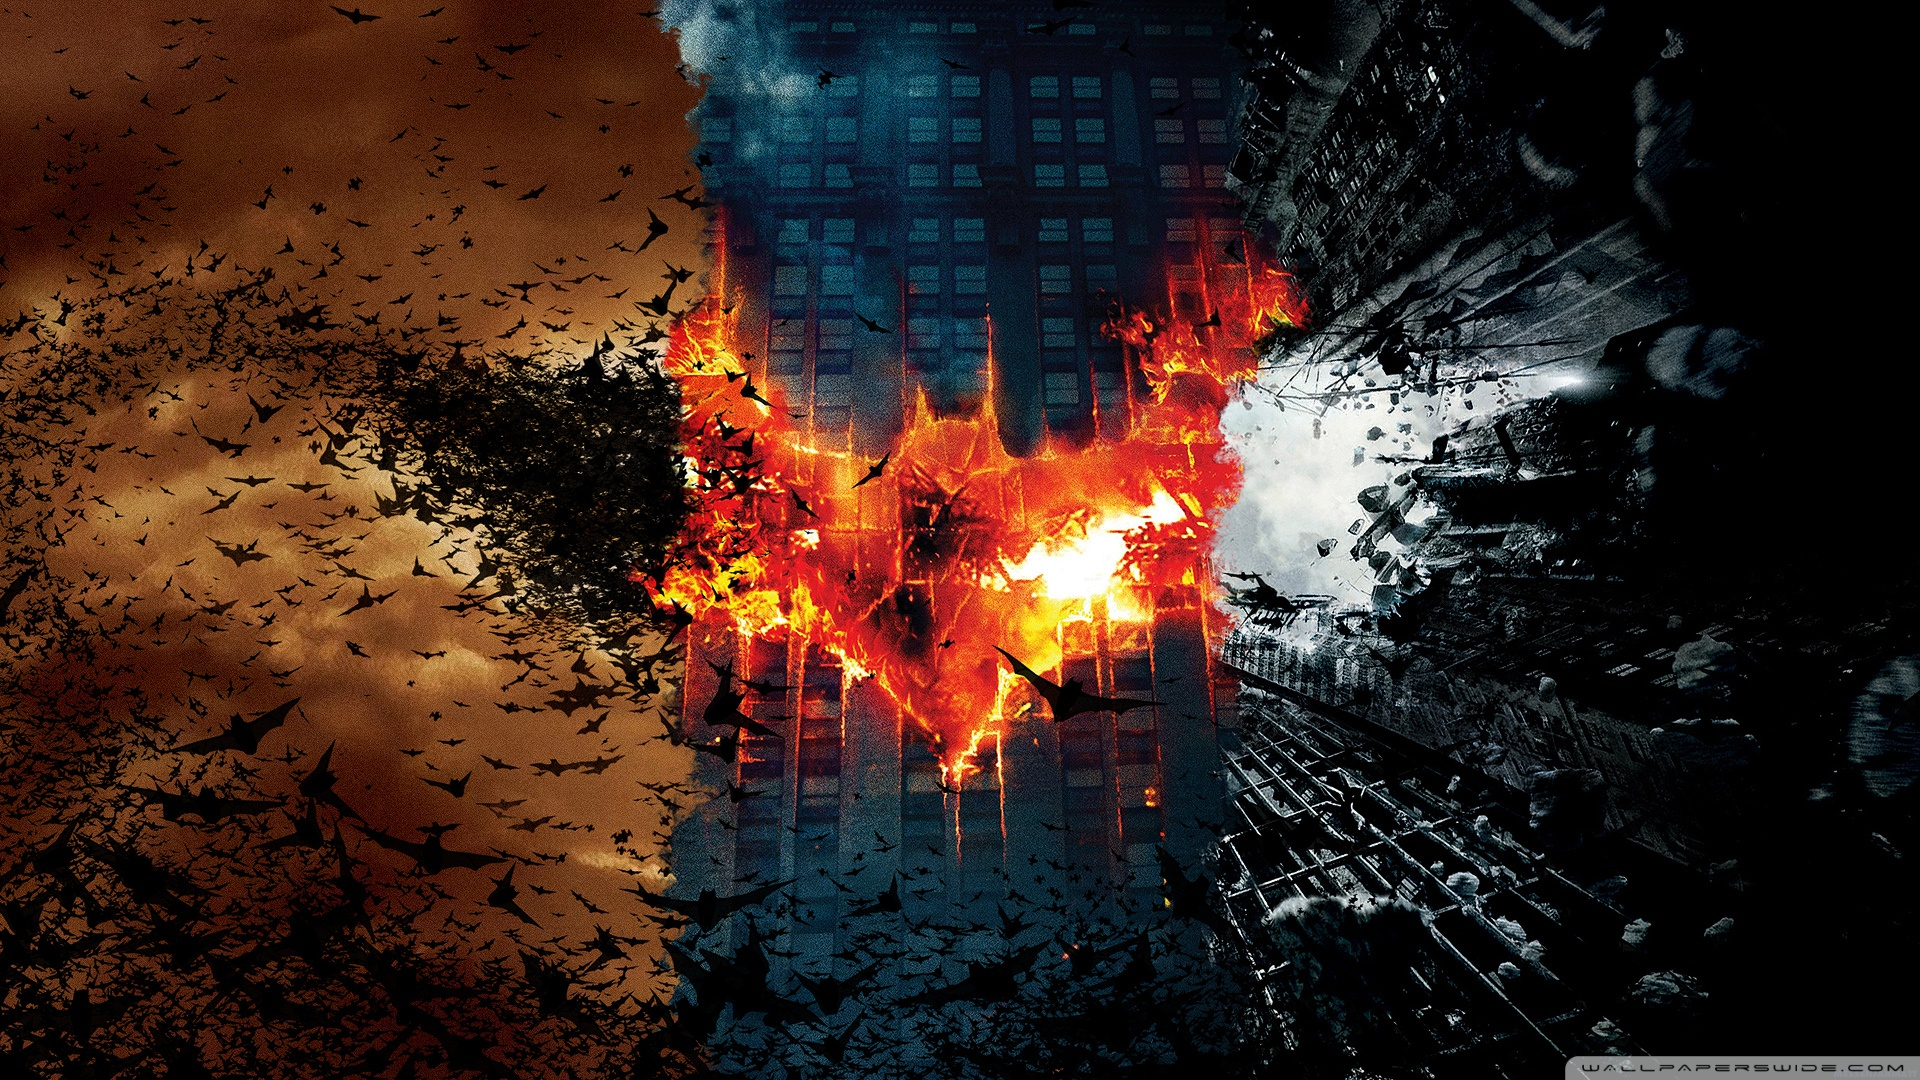 batman_trilogy-wallpaper-1920x1080